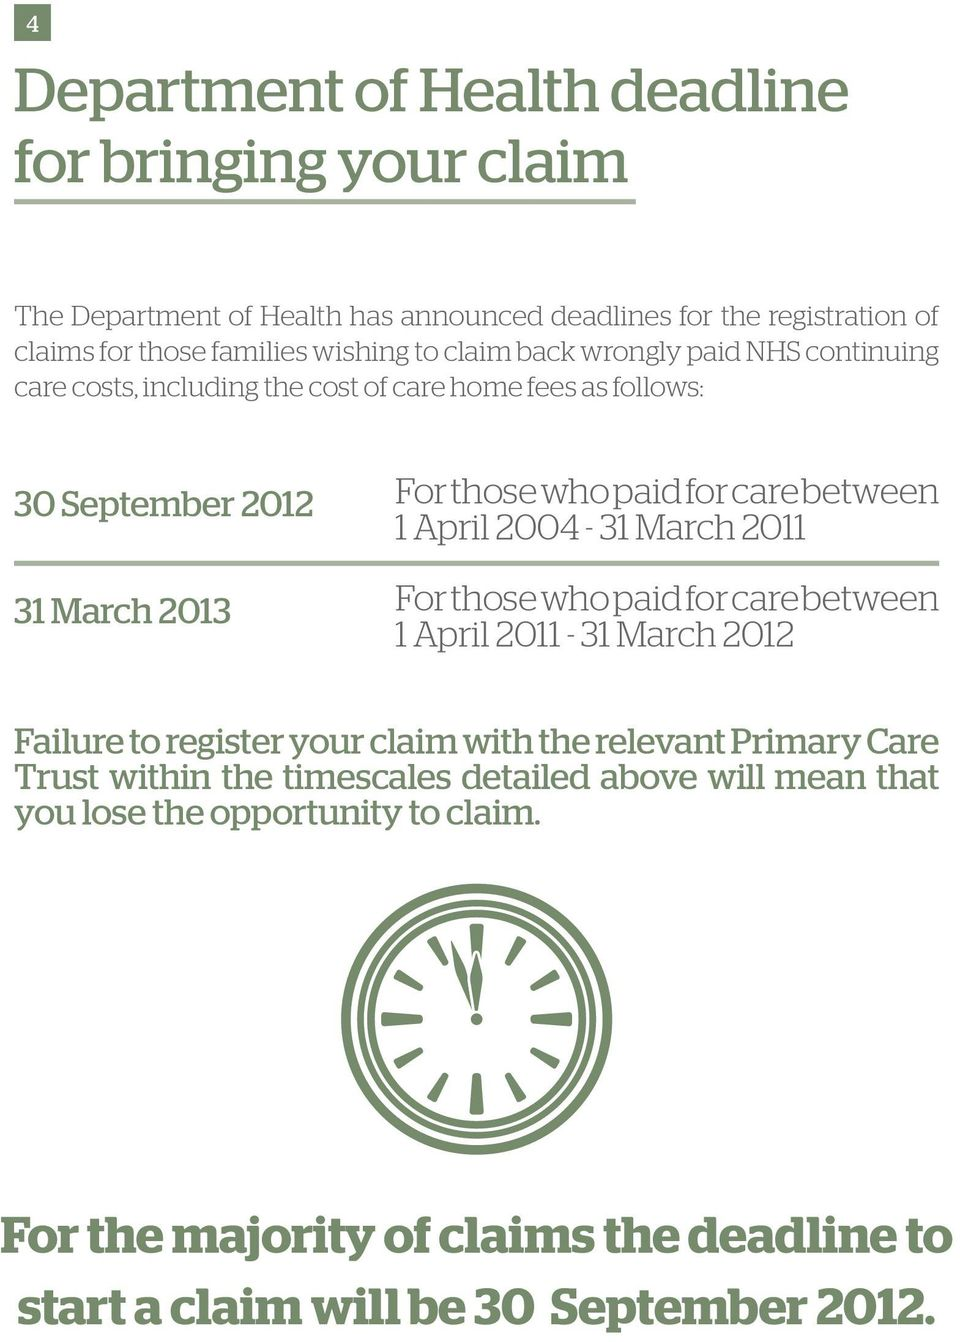 between 1 April 2004-31 March 2011 For those who paid for care between 1 April 2011-31 March 2012 Failure to register your claim with the relevant Primary Care Trust